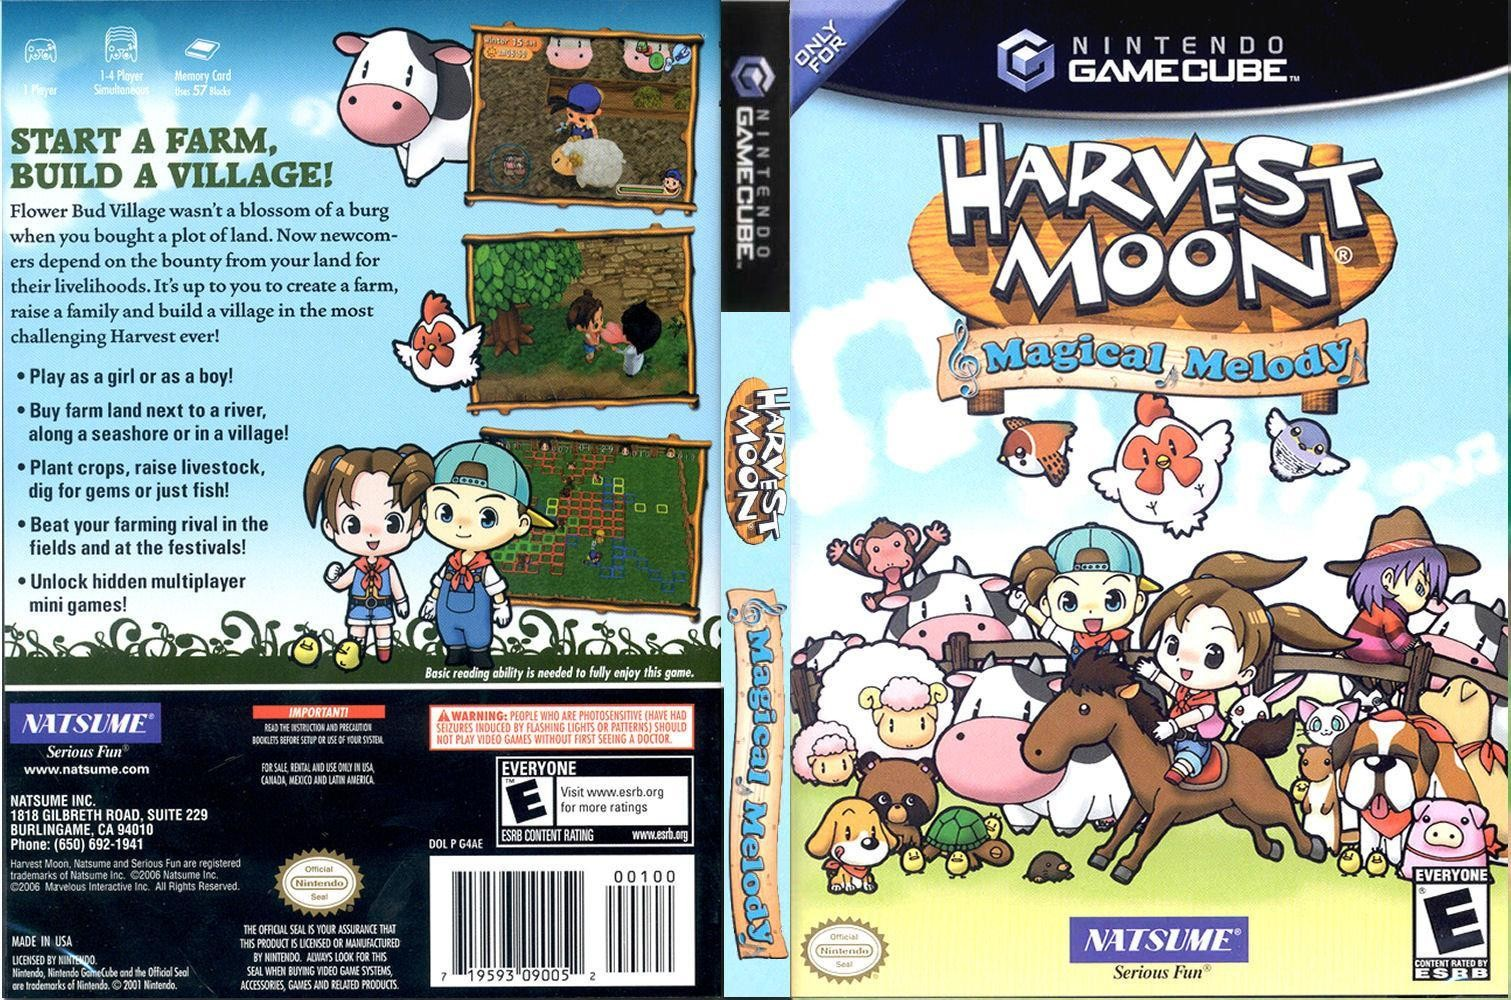 Harvest moon magical melody marriage bed